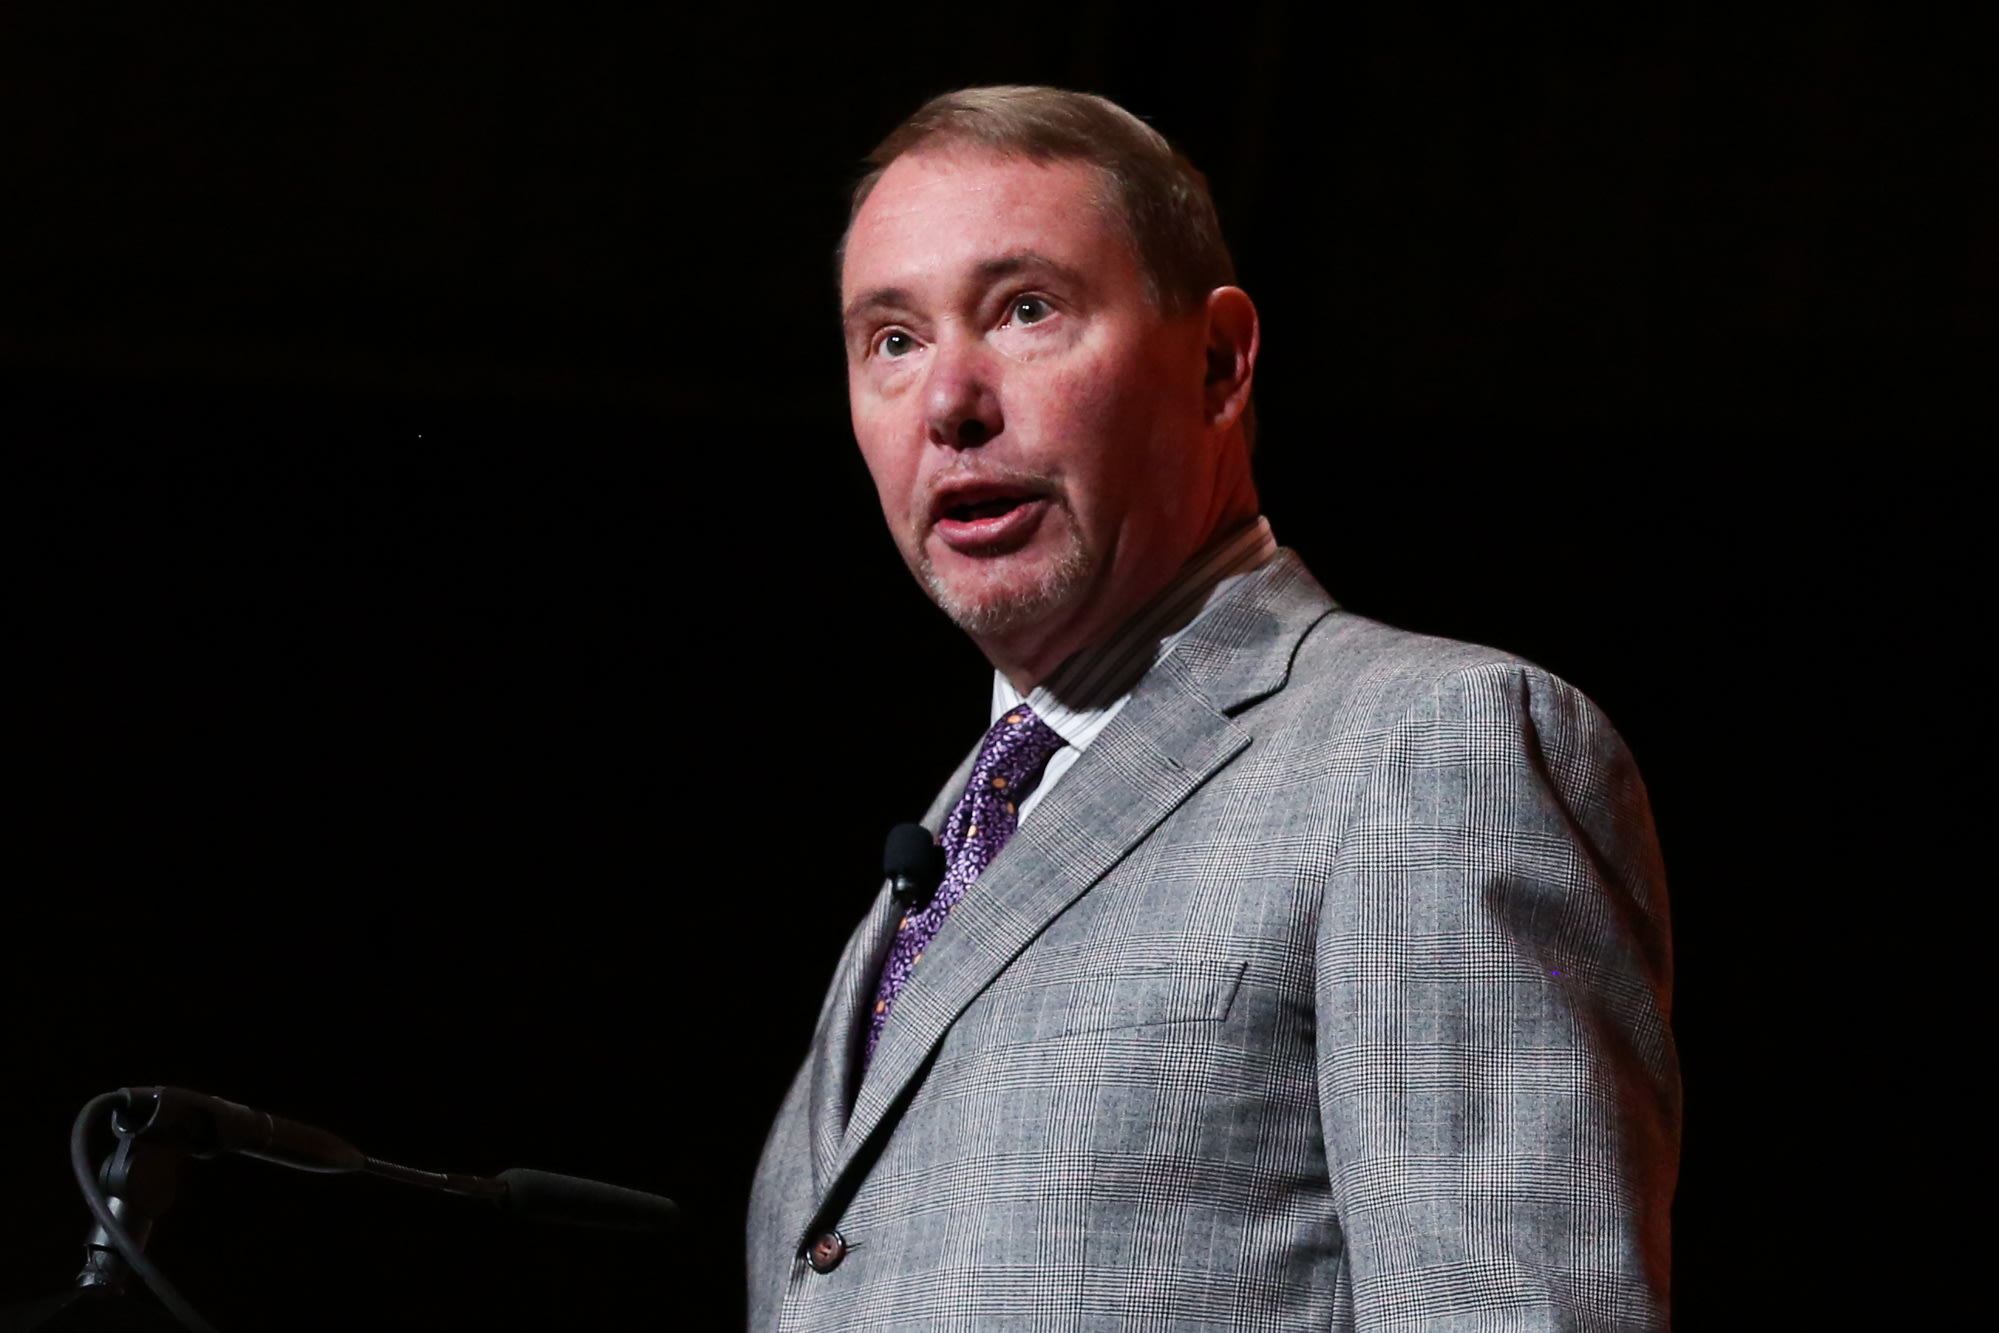 Jeffrey Gundlach says interest rates have bottomed for 2019